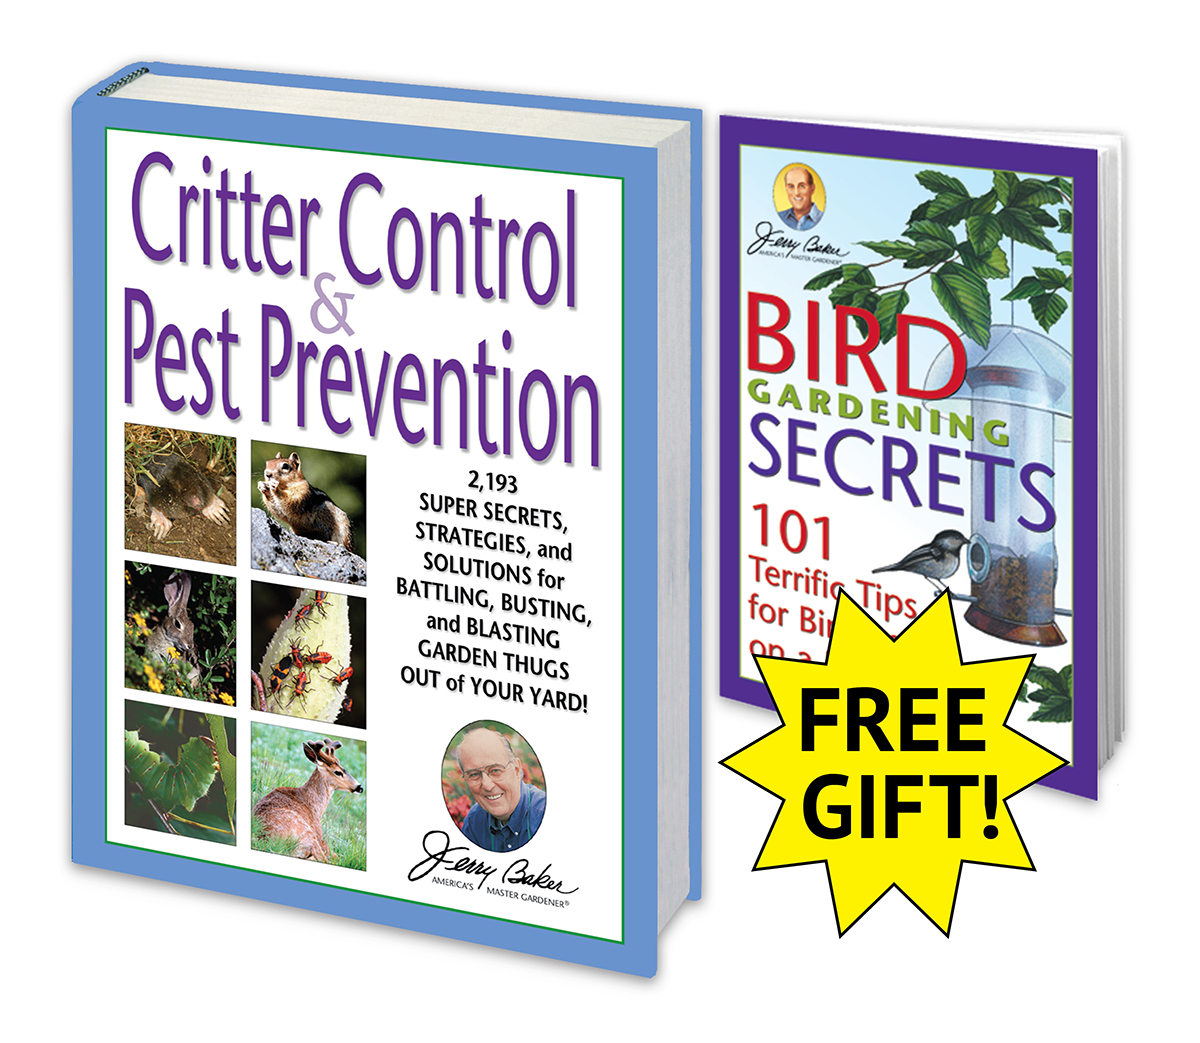 Critter Control & Pest Prevention